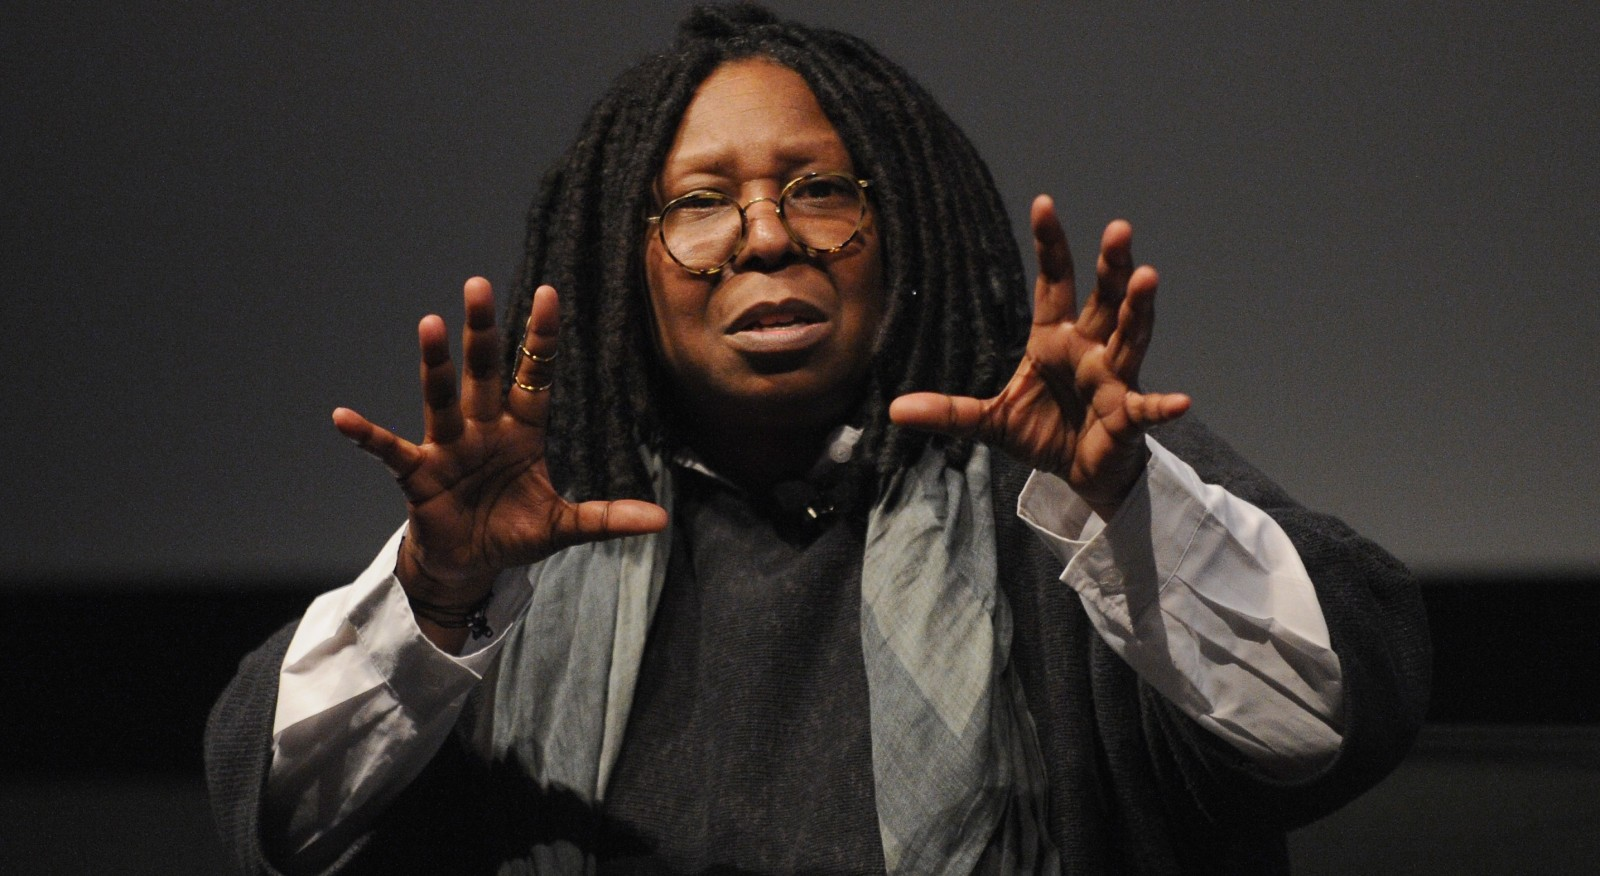 Whoopi is just talking with her hands, not casting a spell. (Getty Images)